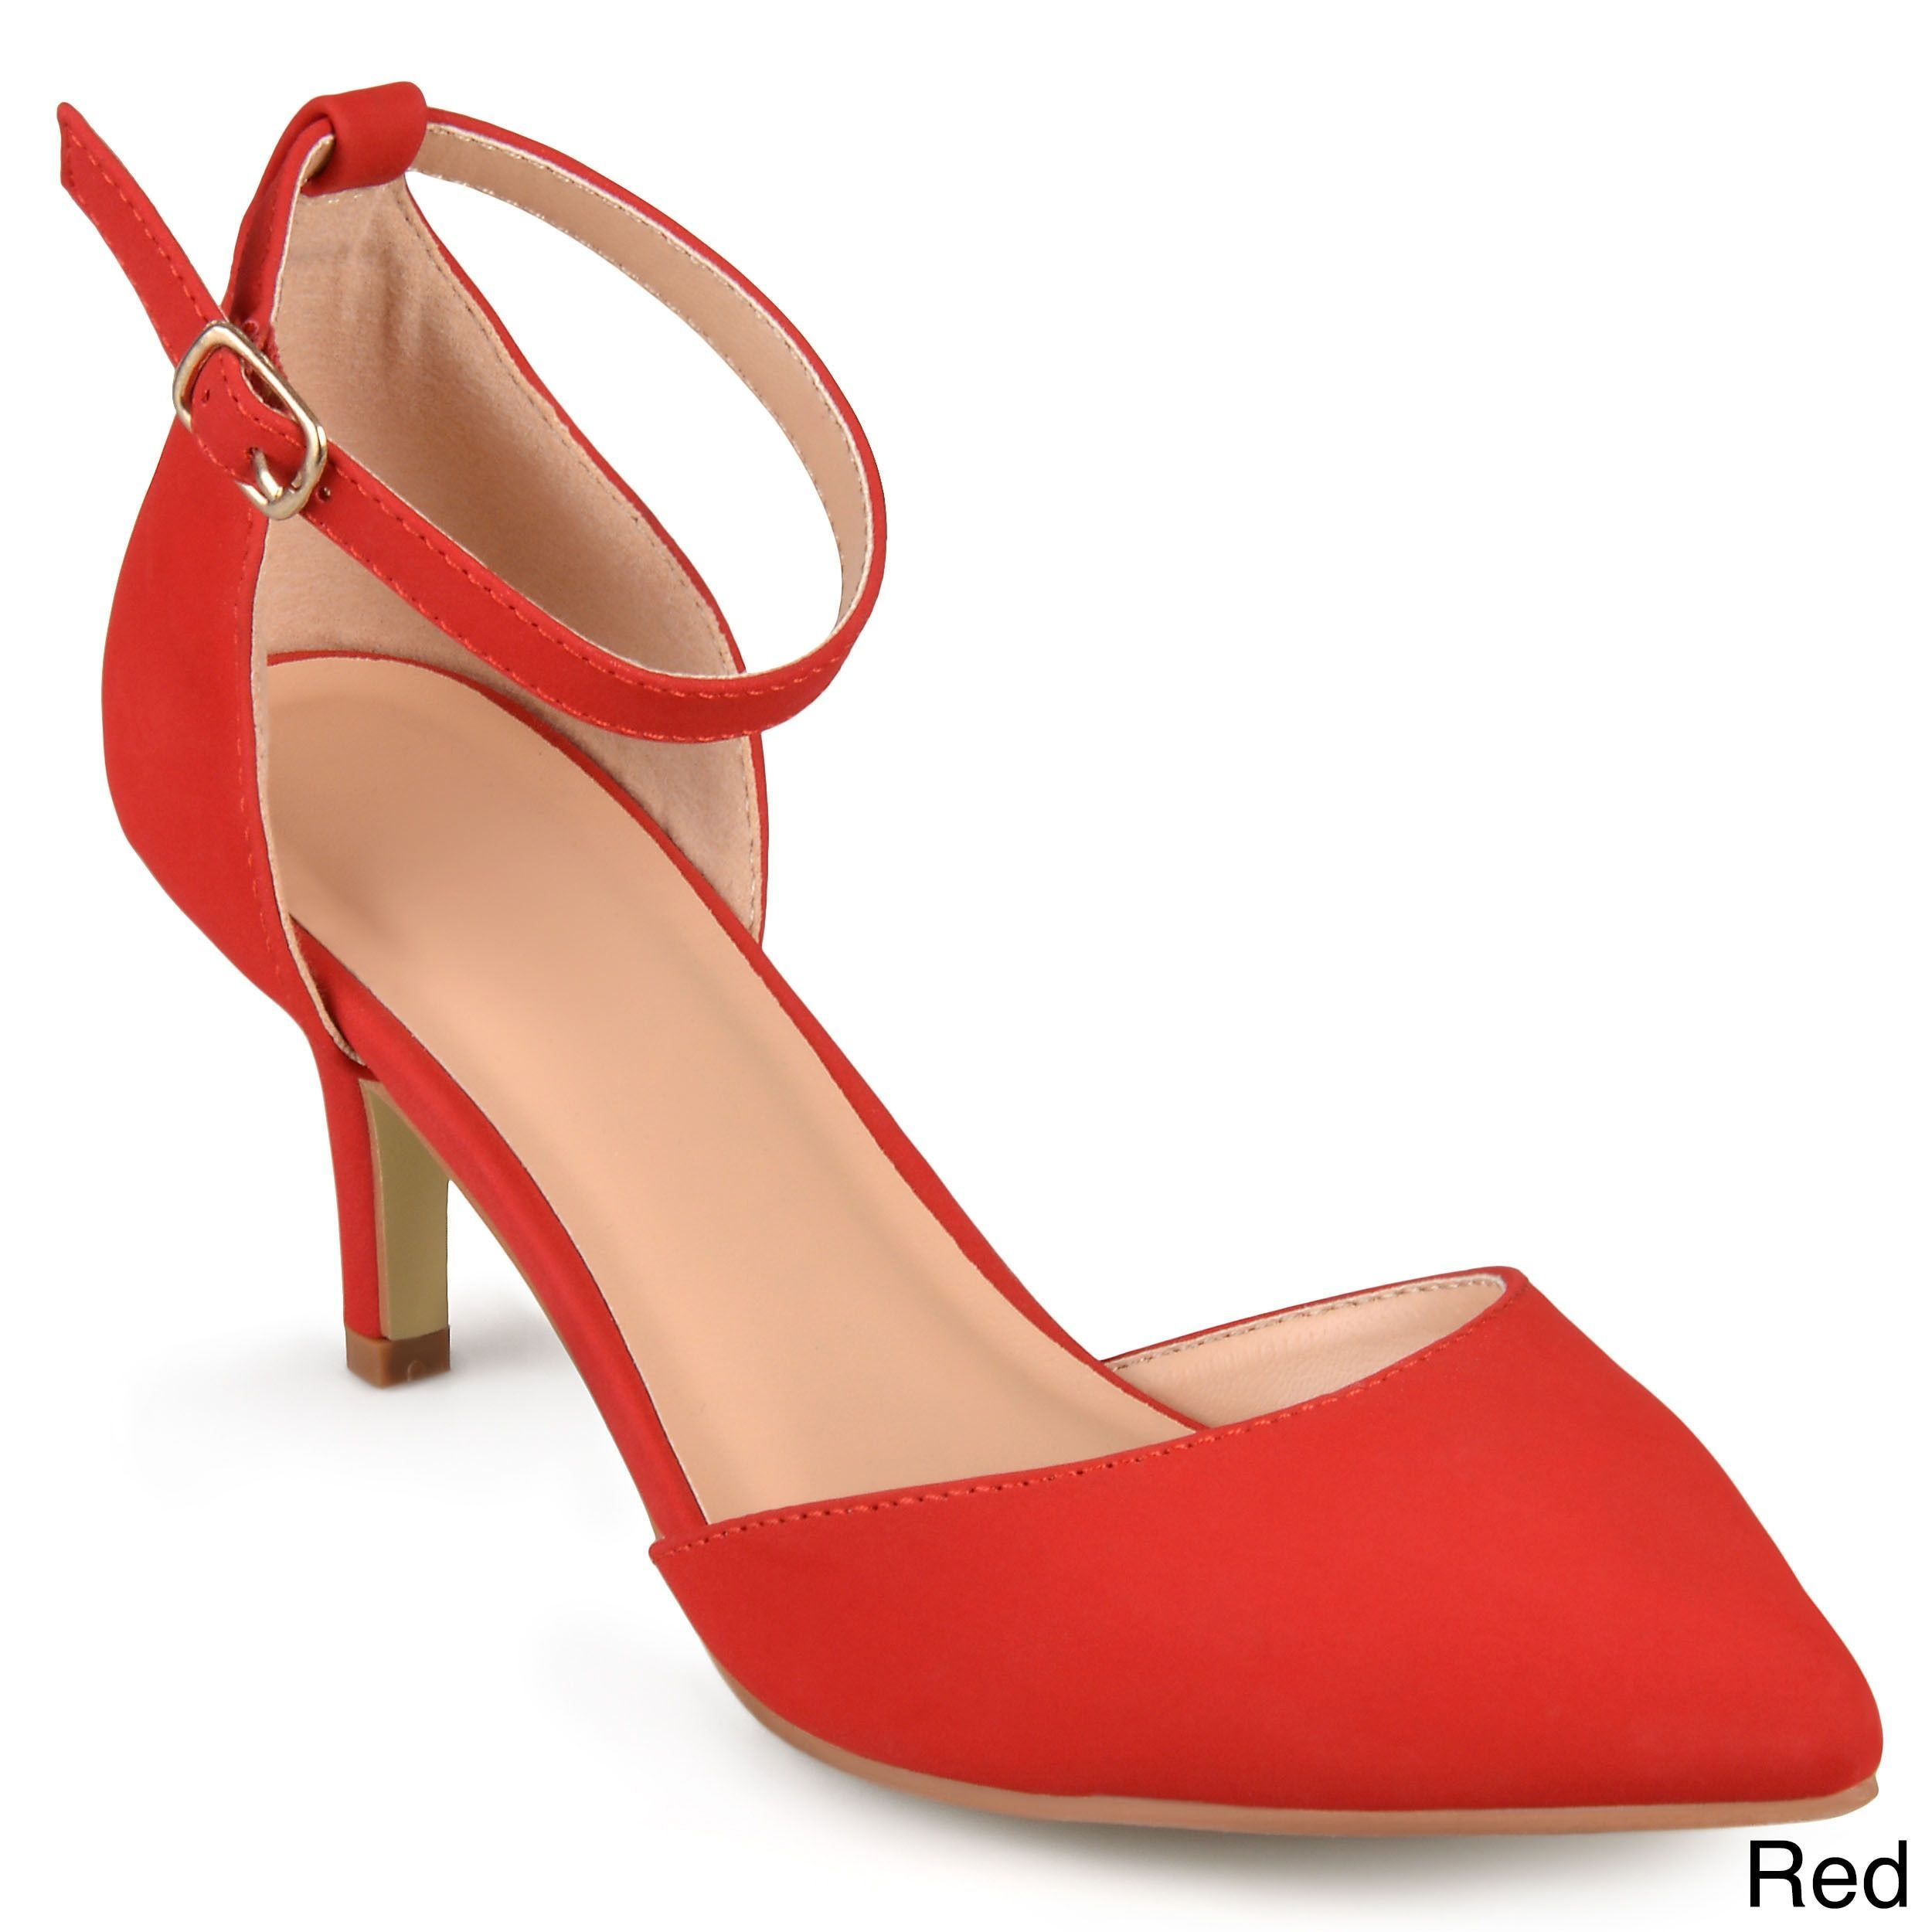 2fa3f9c03eb1c Journee Collection Women's 'Bay' Faux Suede Ankle Strap Pumps (Red ...